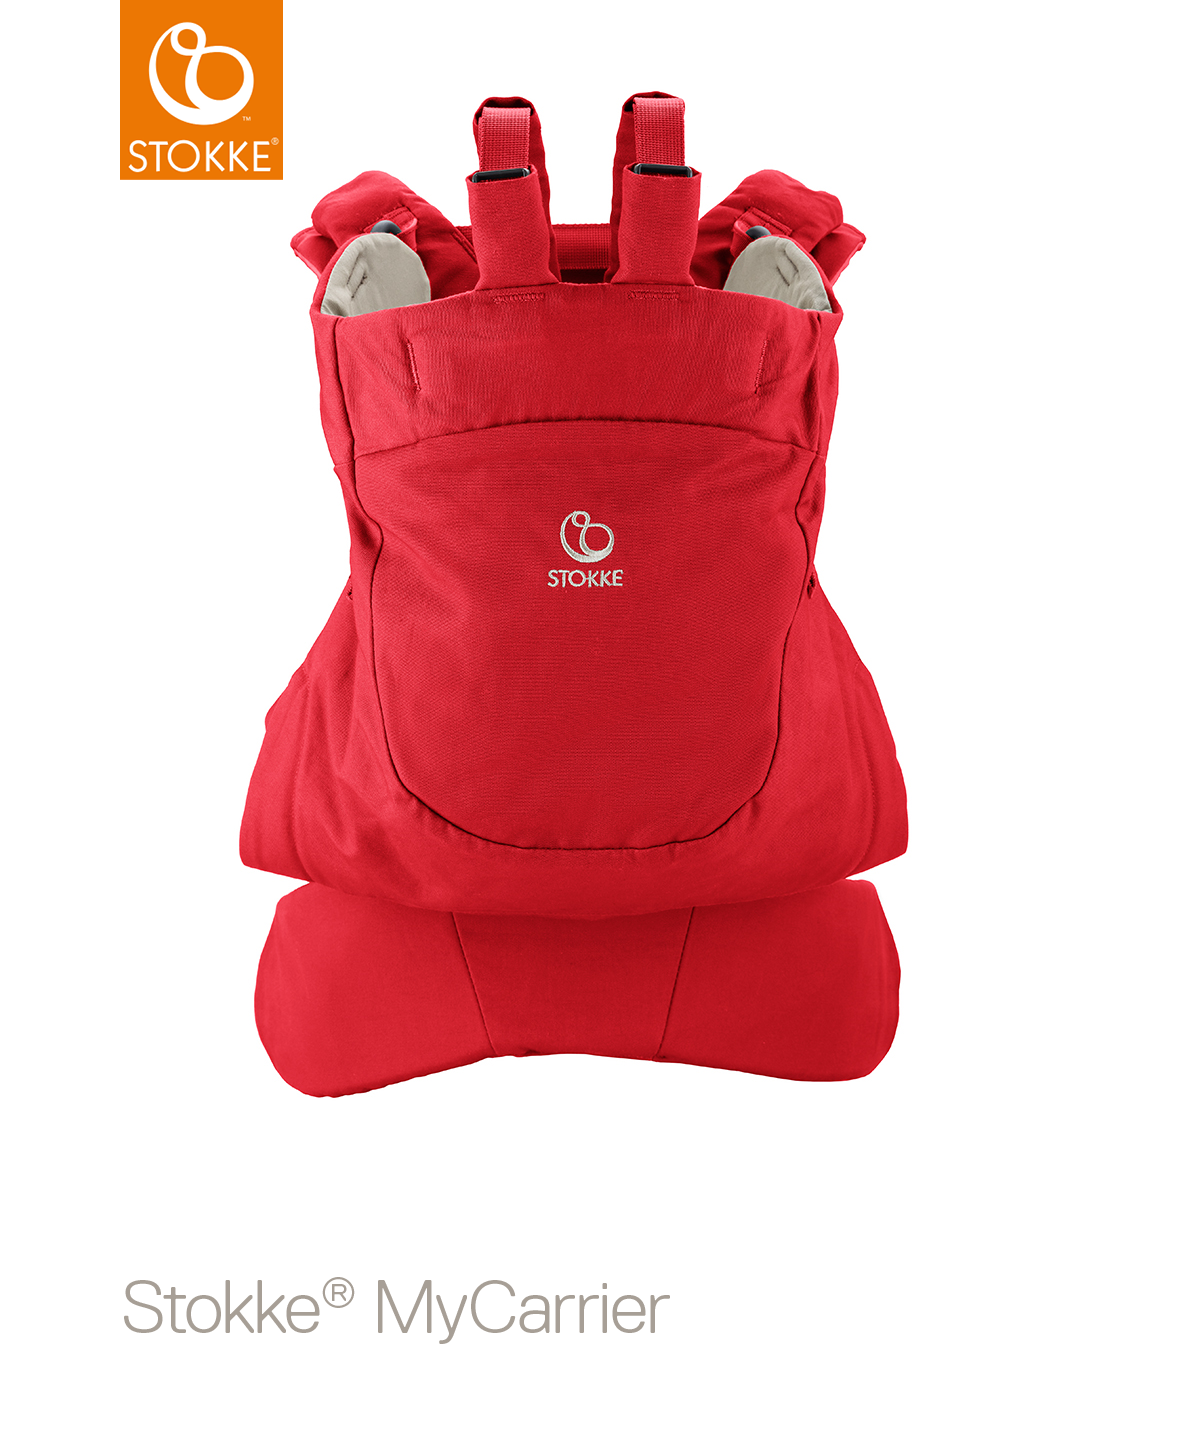 The Stokke®, MyCarrier™ Front and Back Carrier